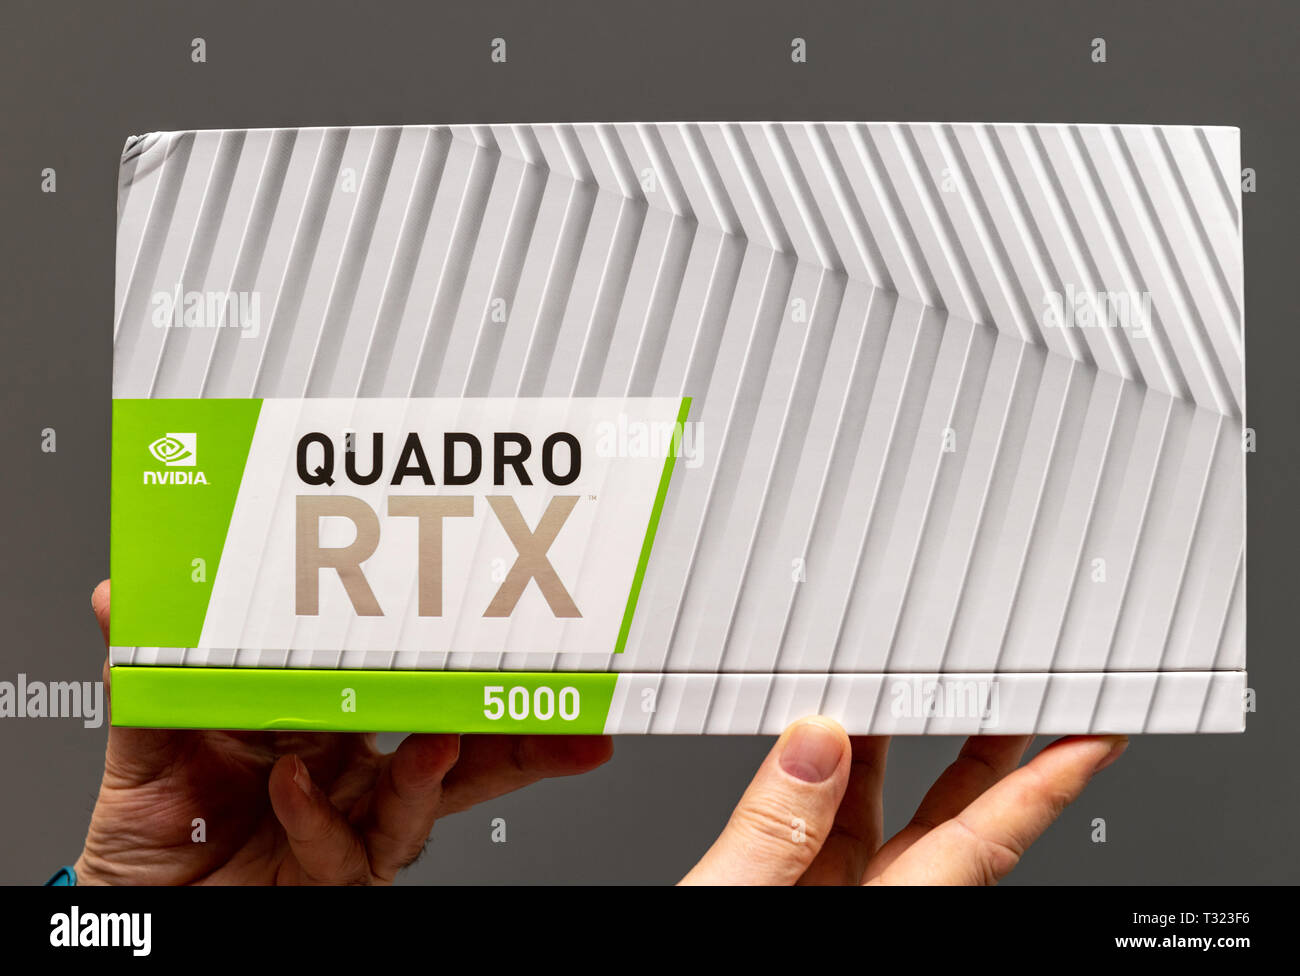 Paris France - Mar 28 2019: Senior man showing cardboard boxes before unboxing of Nvidia Quadro RTX 5000 workstation GPU featuring new tensor cores - gray background - Stock Image